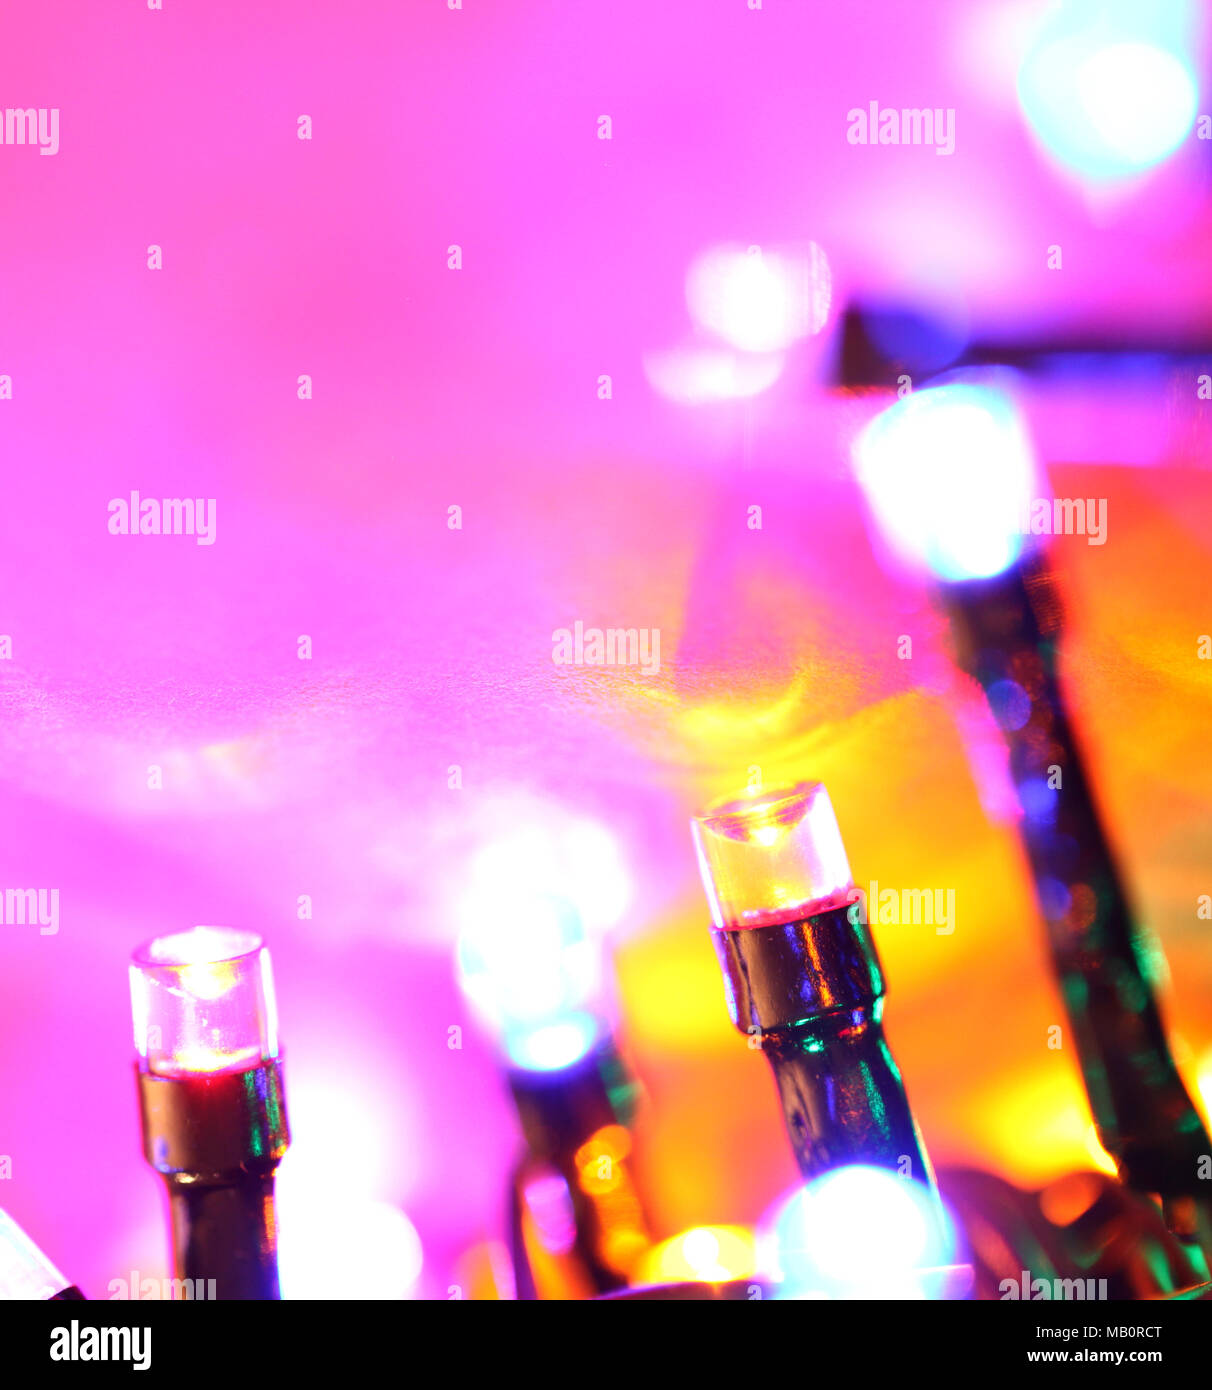 Close Up Of Photo178883288 Led Bulbs Blinking Stock Alamy dCrWBoQxeE